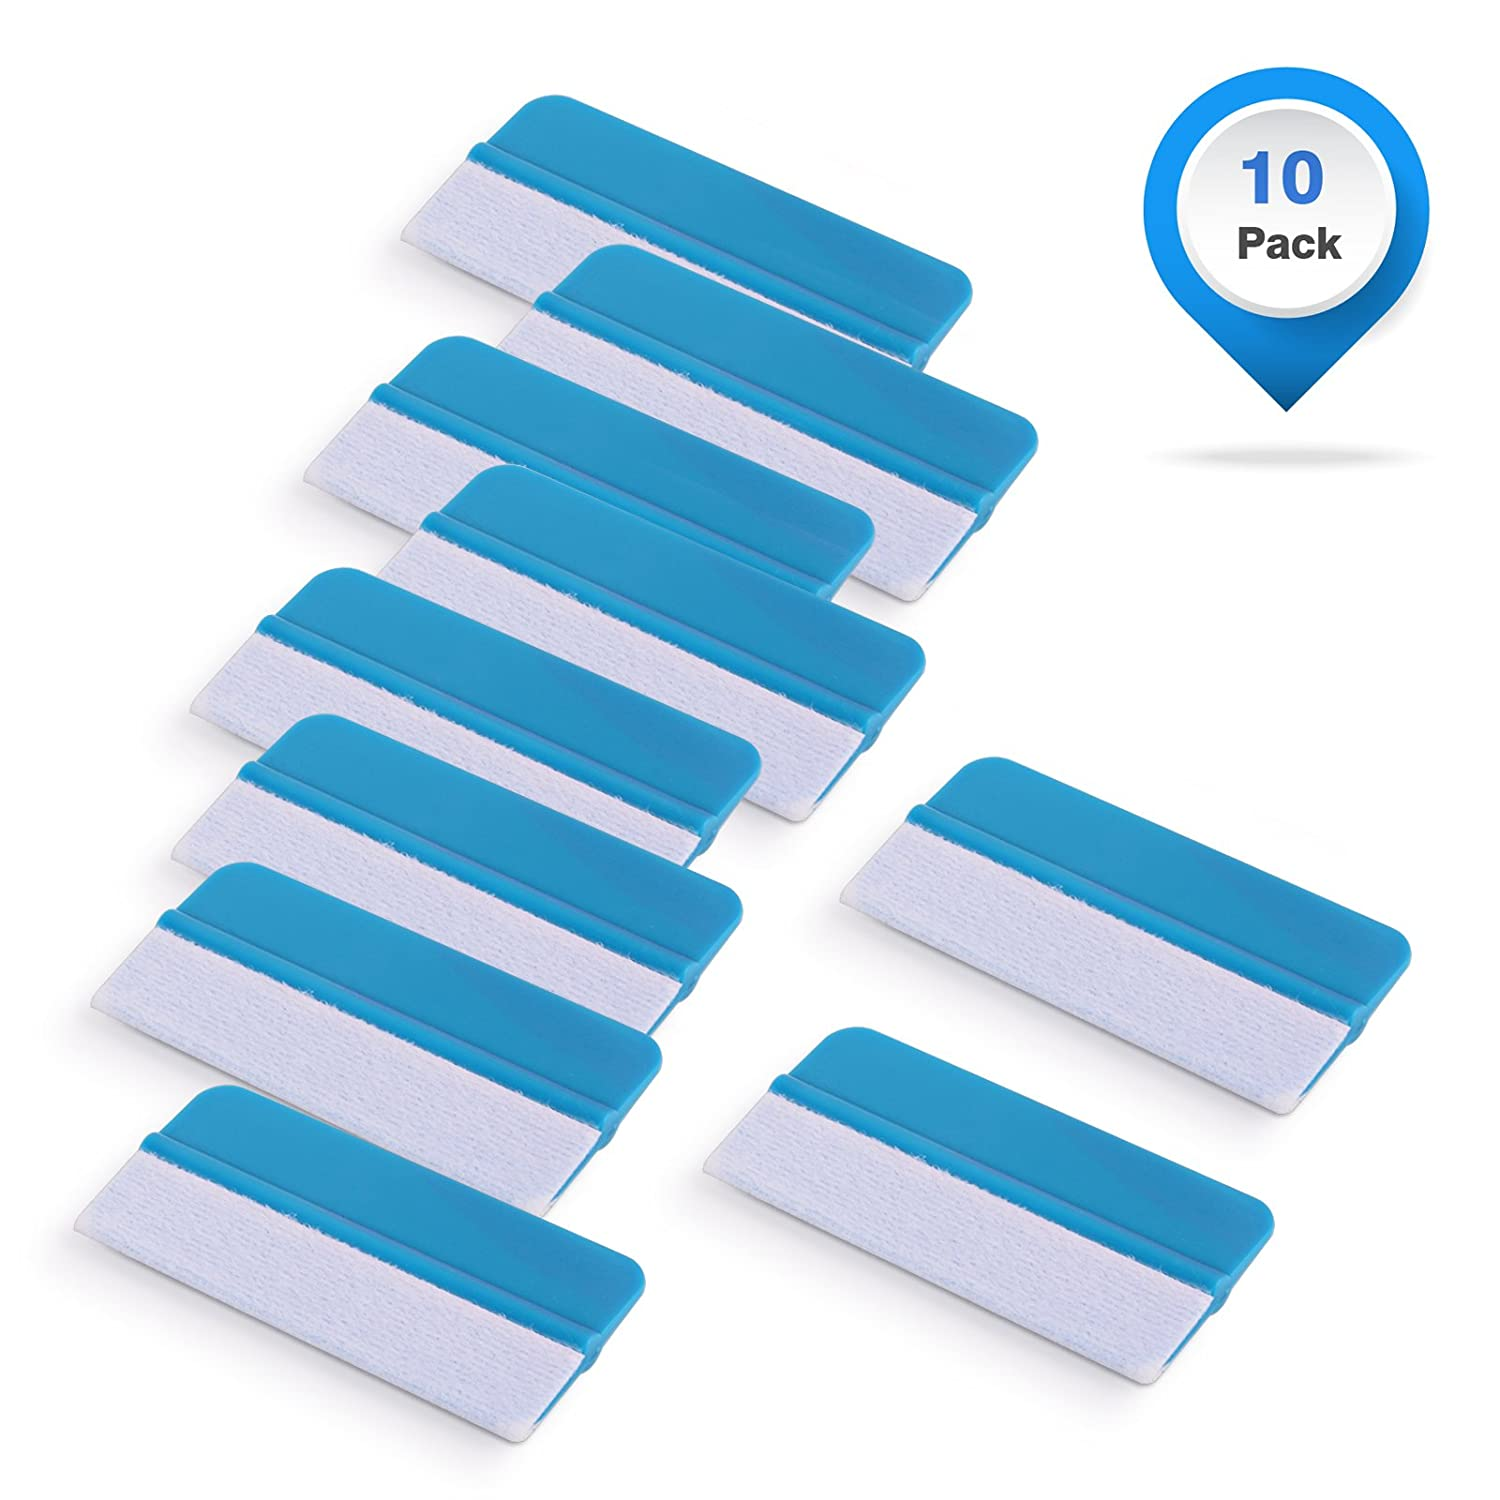 Gomake 10 Pack Mini Vinyl Wrap Tools Felt Edge Squeegee Scratch Free for Auto Vinyl Wraps Application Tool Tint Film Wallpaper Tool Blue